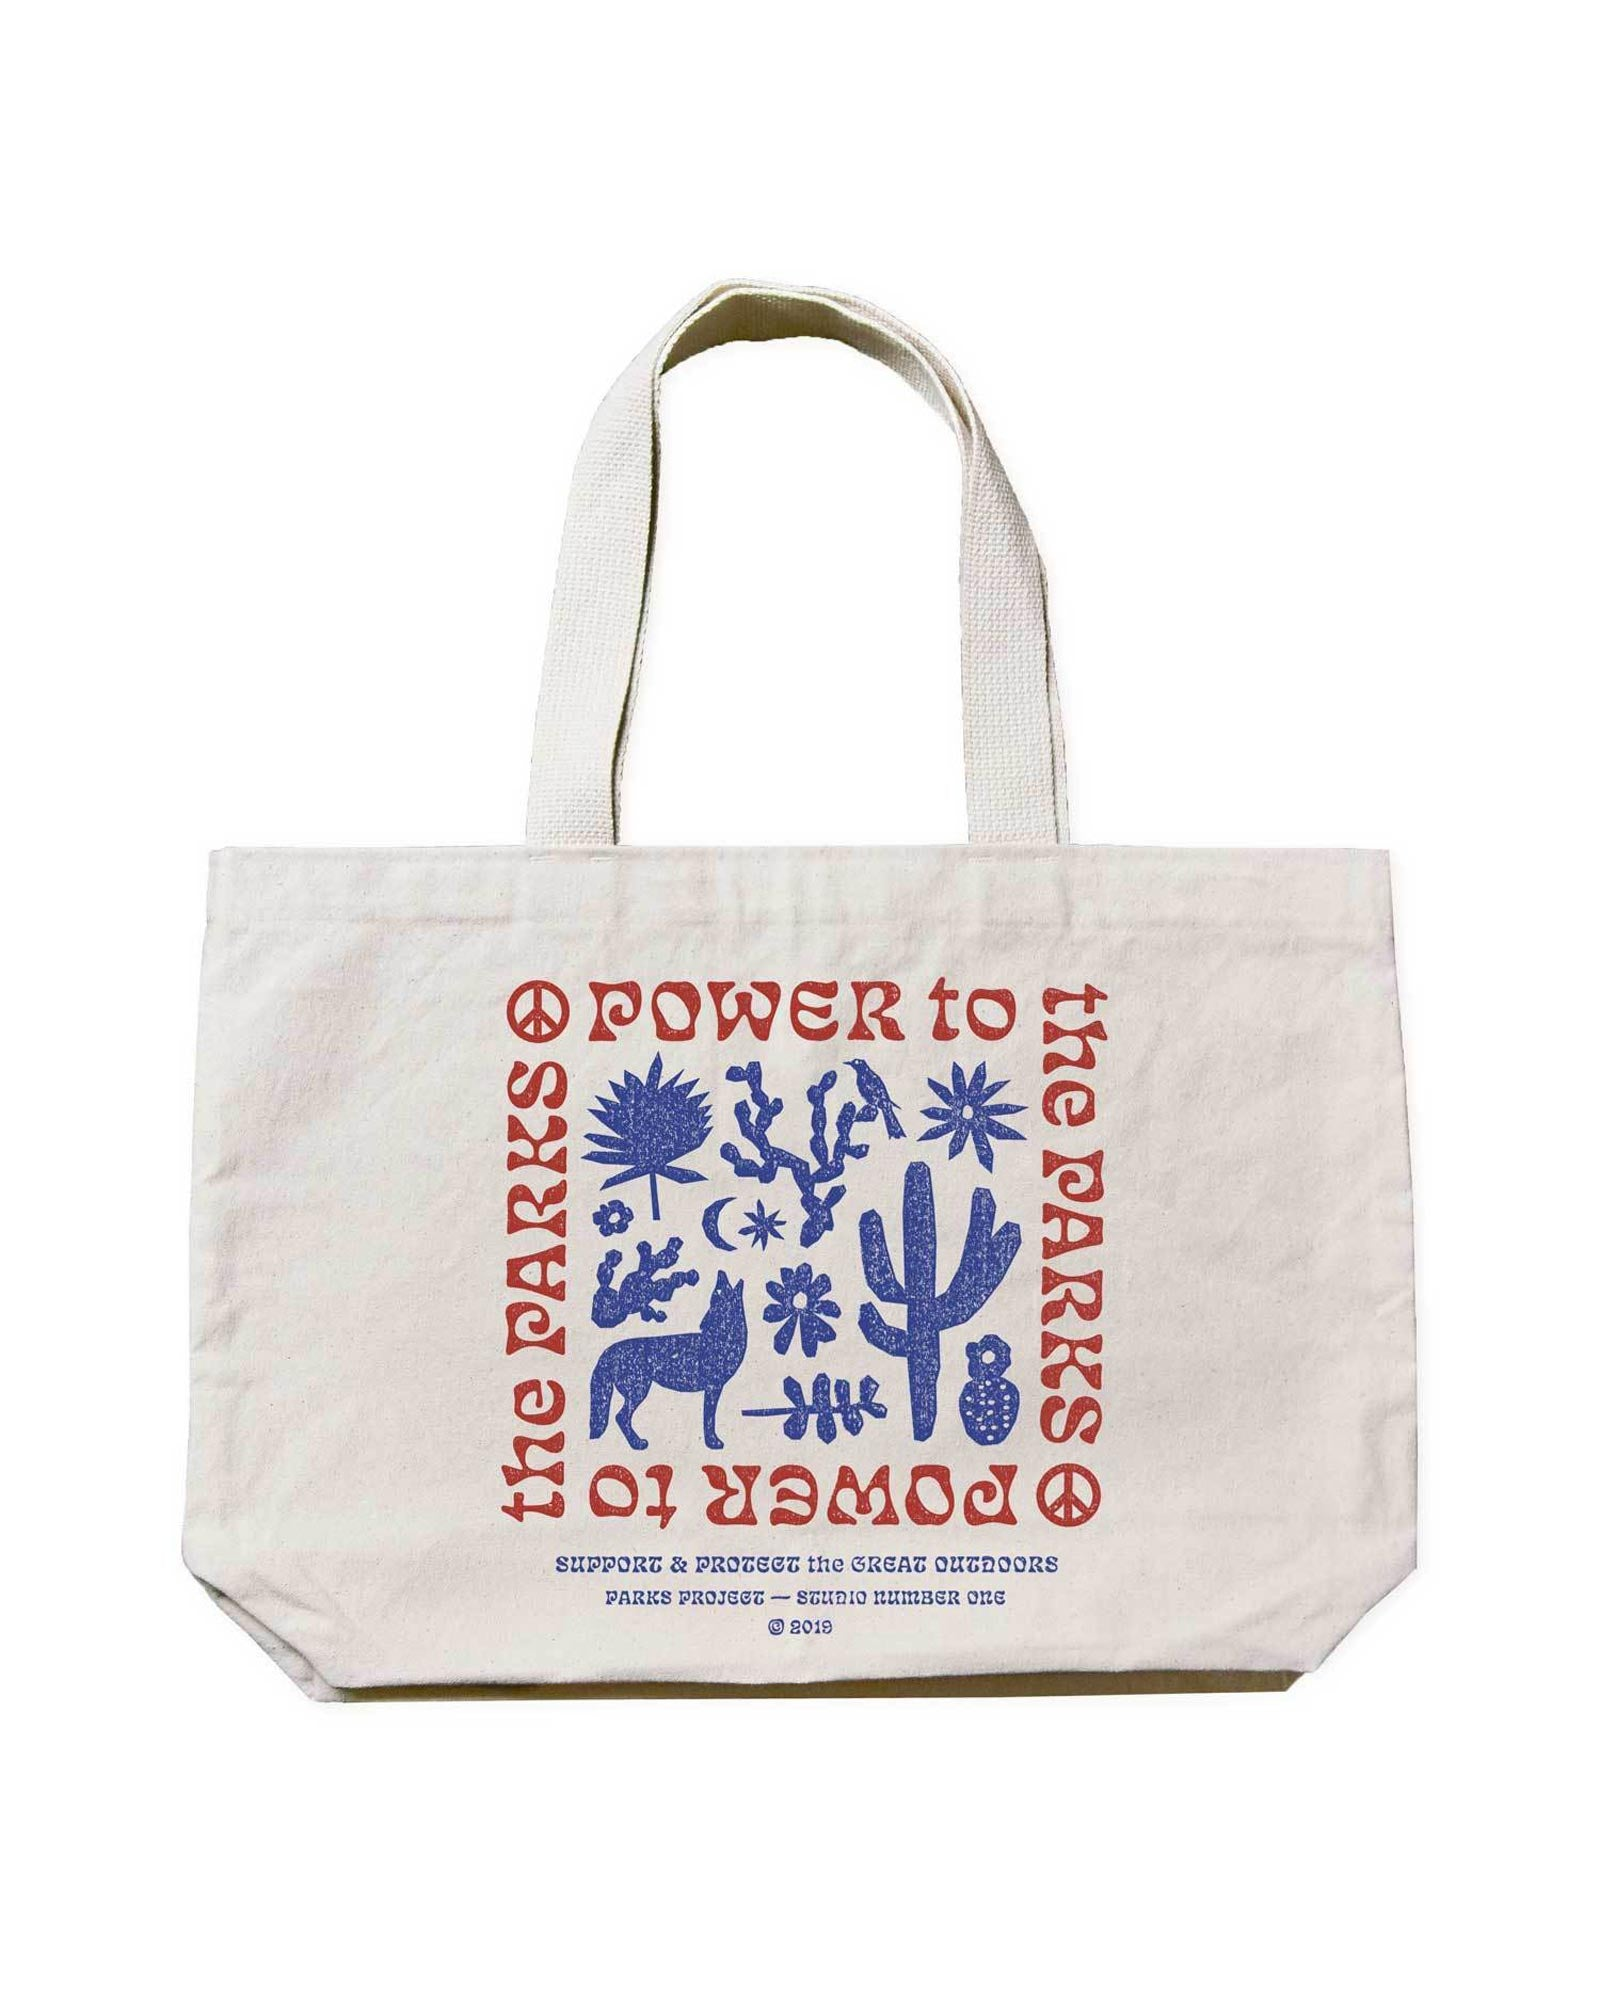 Power to the Parks Canvas Tote | Parks Project x Studio Number One | National Parks Tote